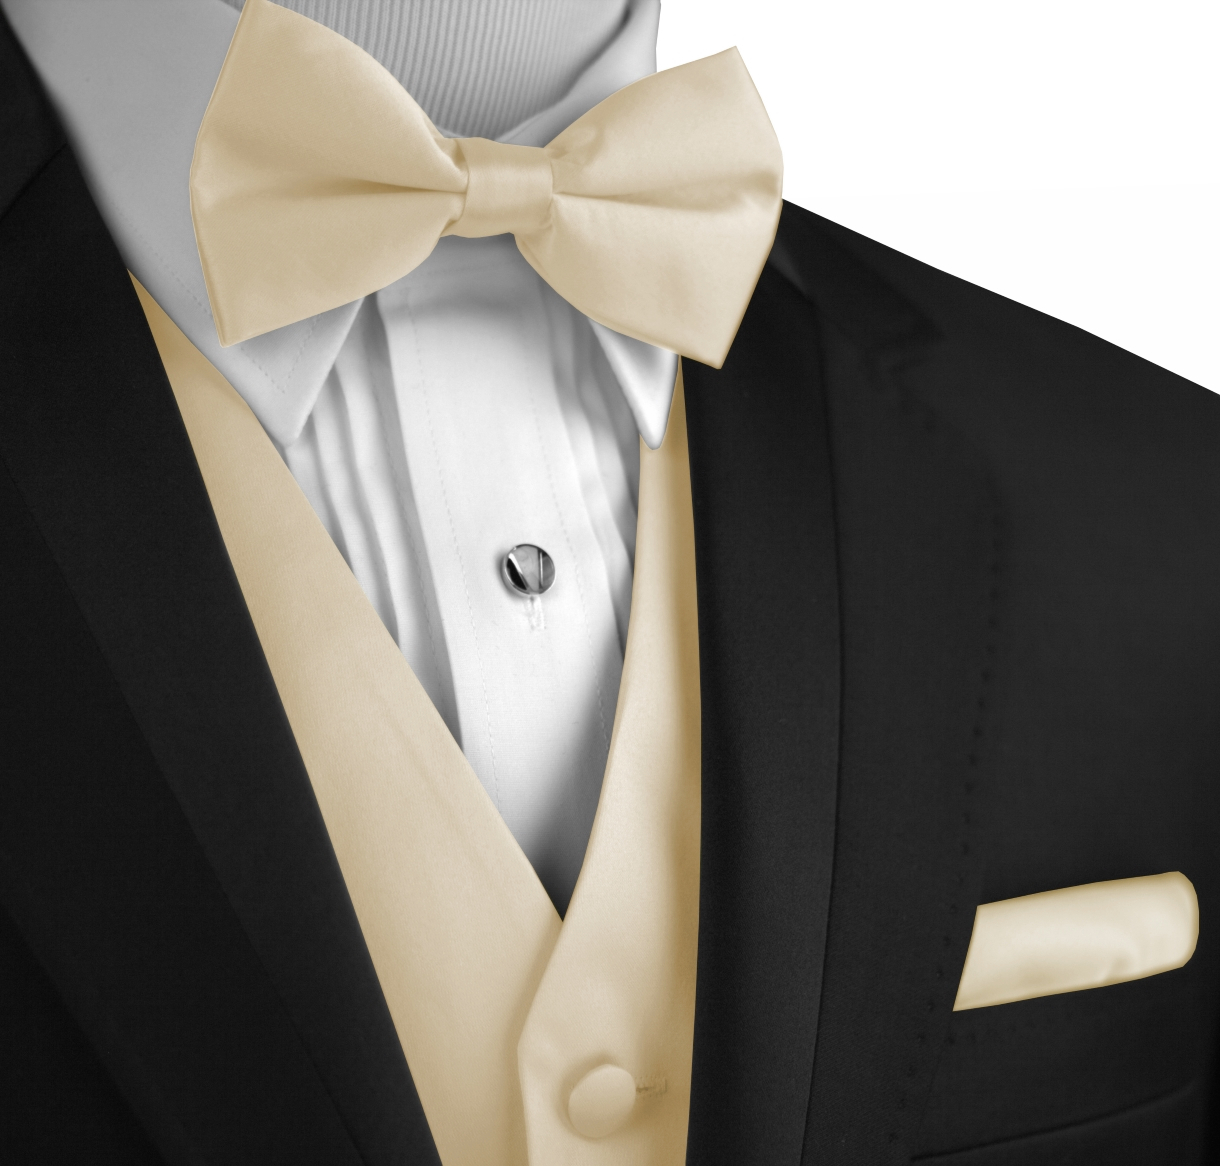 Italian Design, Men's Tuxedo Vest, Bow-Tie & Hankie Set in Champagne - XL